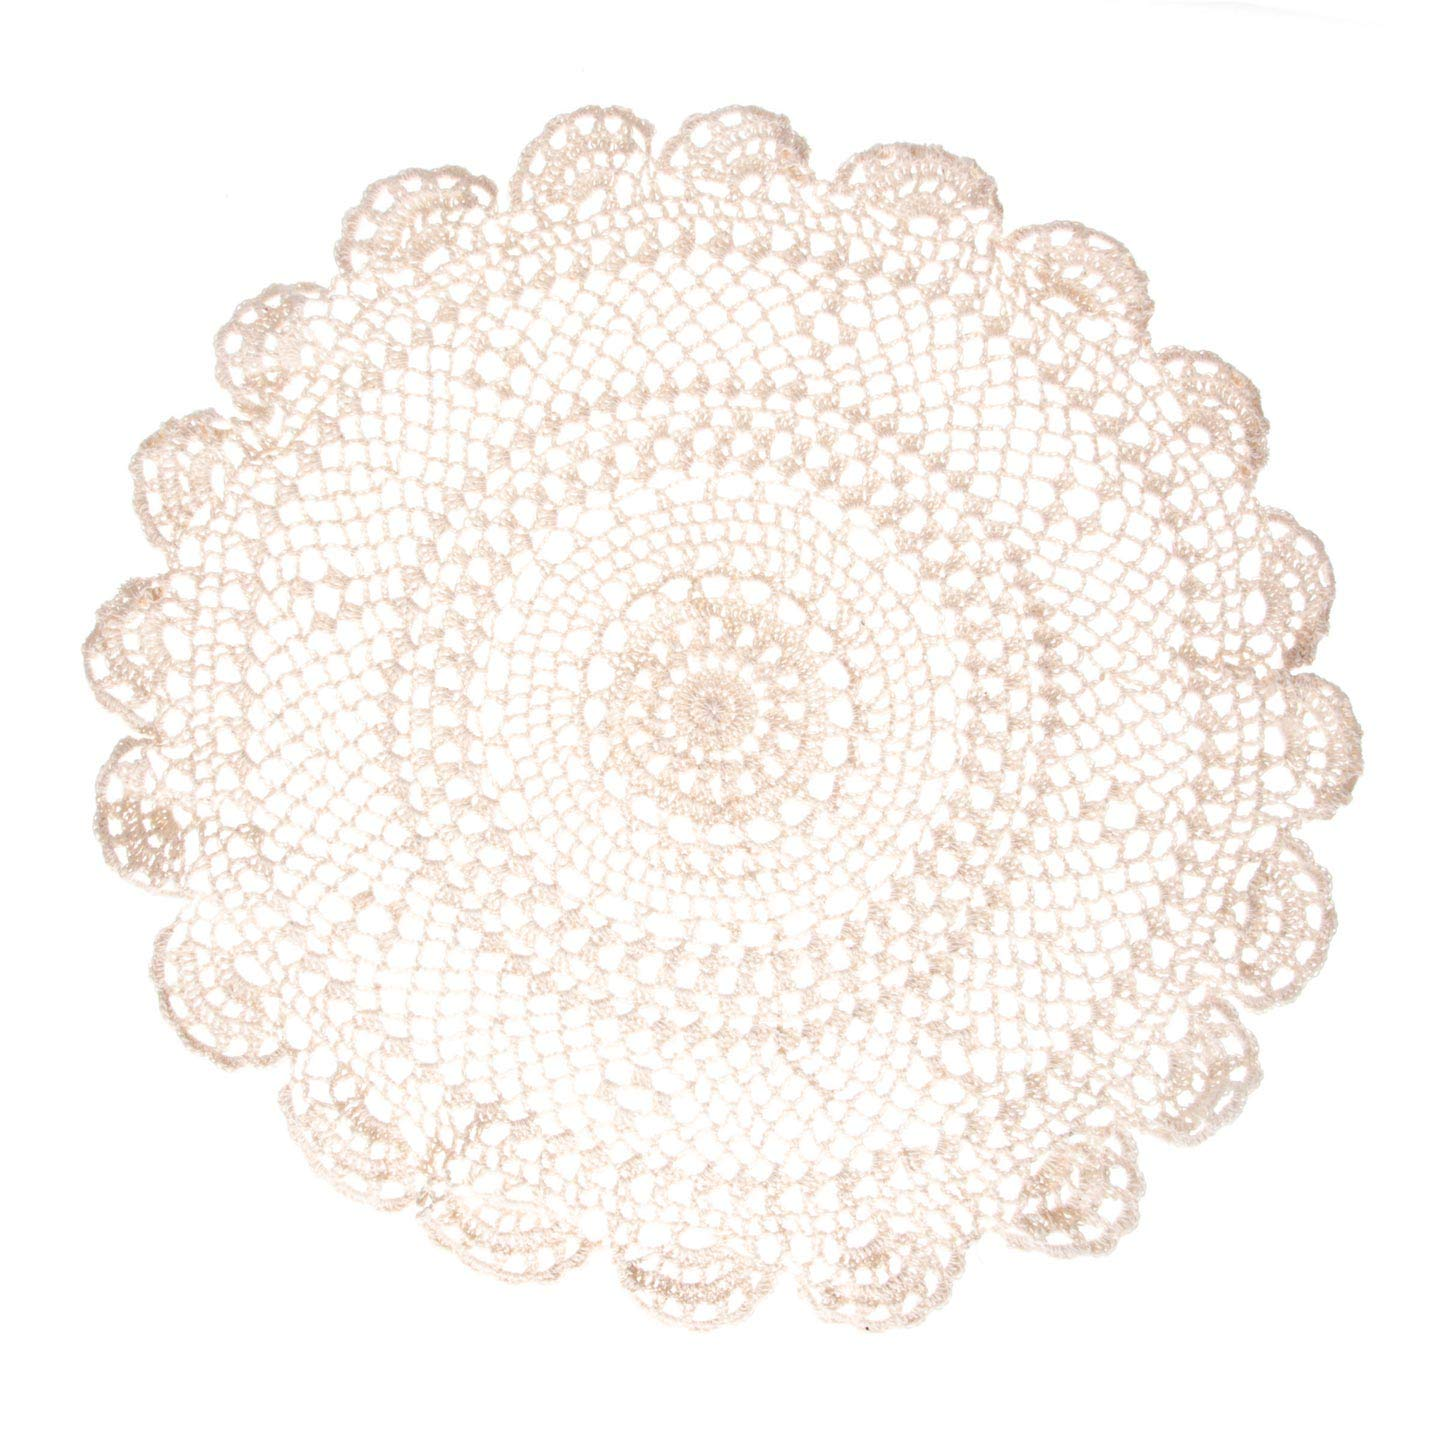 Darice Bulk Buy DIY Crafts Doily Ecru 20 inches (12-Pack) 4011-20-ECRU